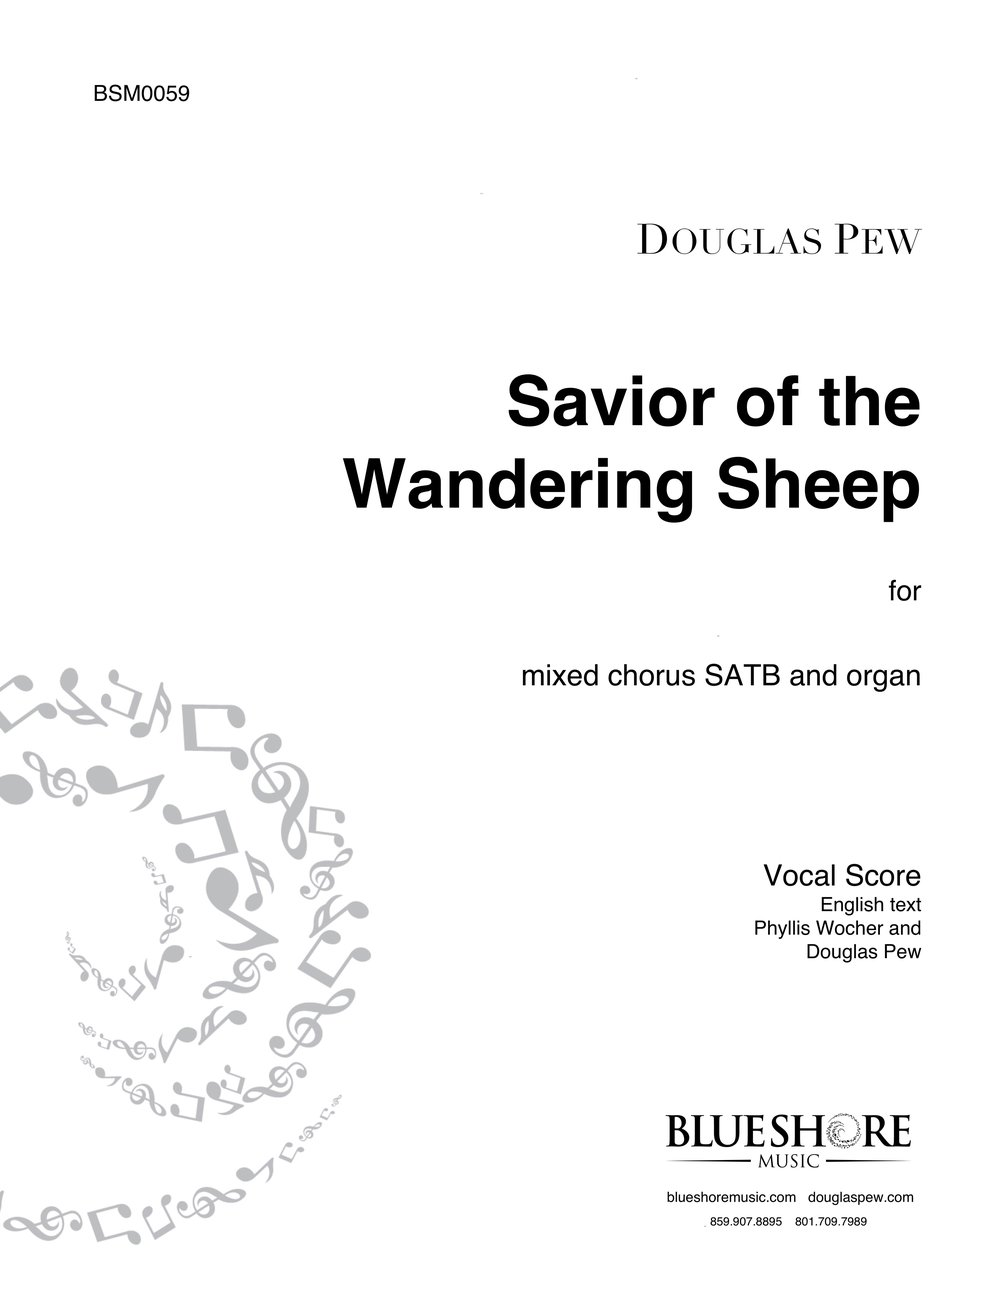 Savior of the Wandering Sheep An original Hymn for SATB and organ. Text by Phyllis Wocher.